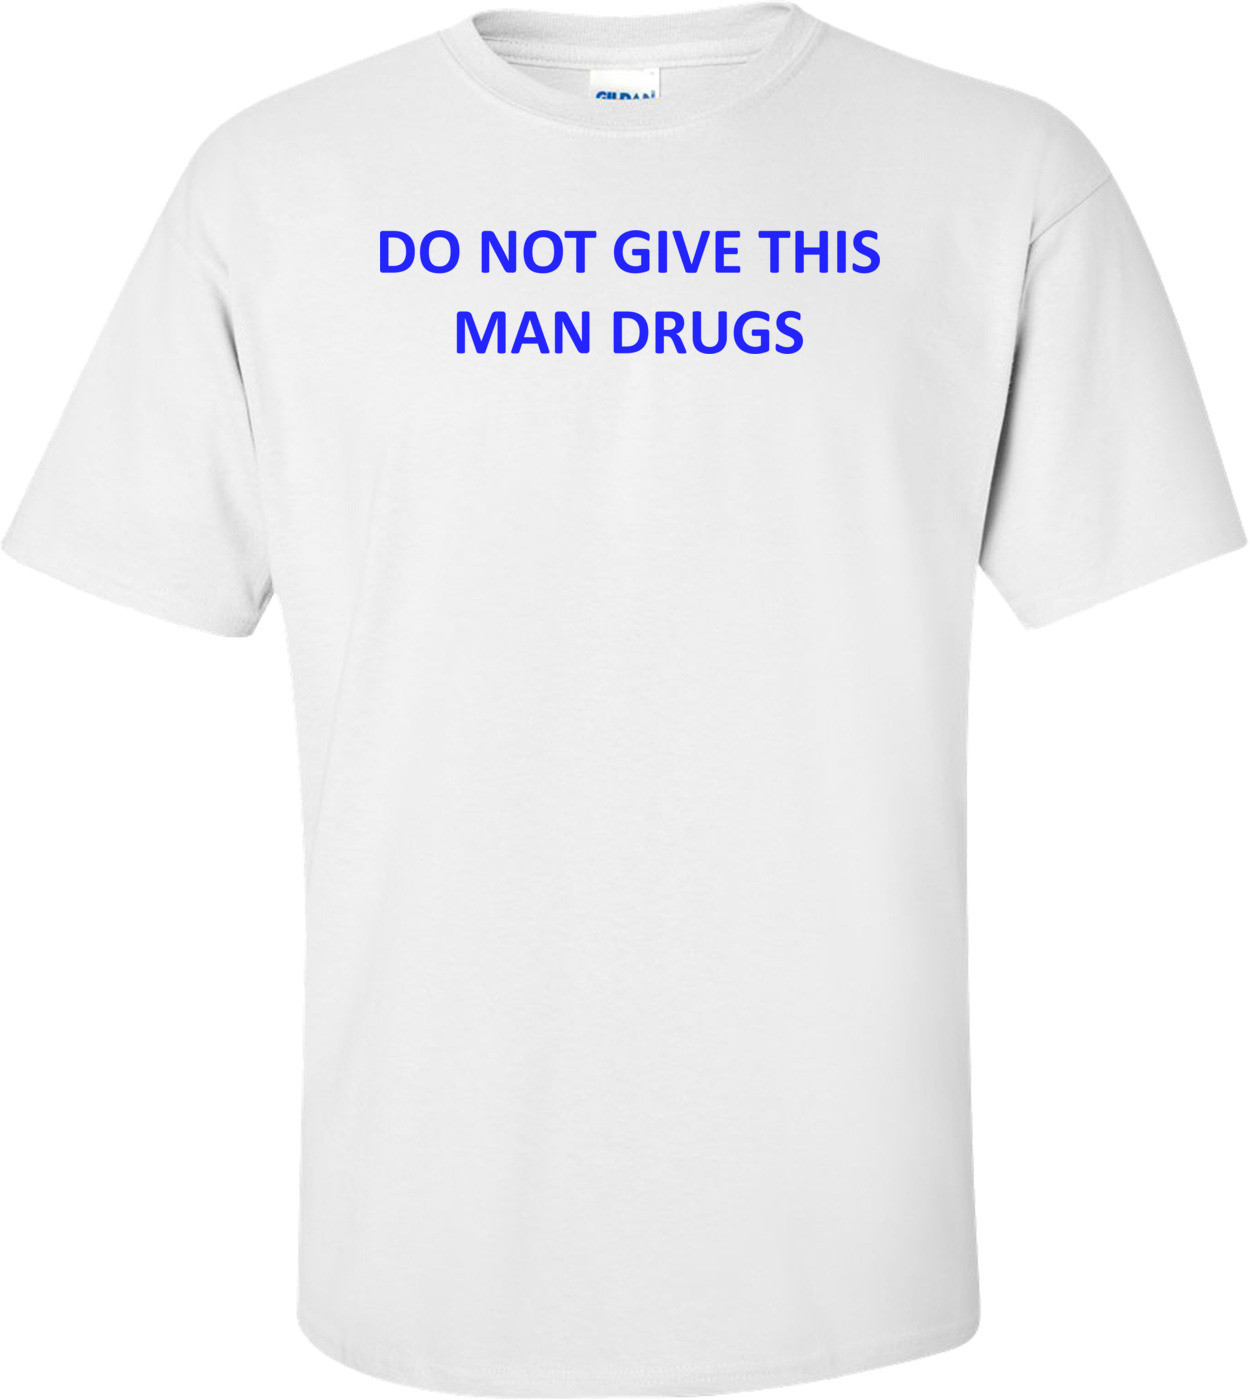 DO NOT GIVE THIS MAN DRUGS Shirt